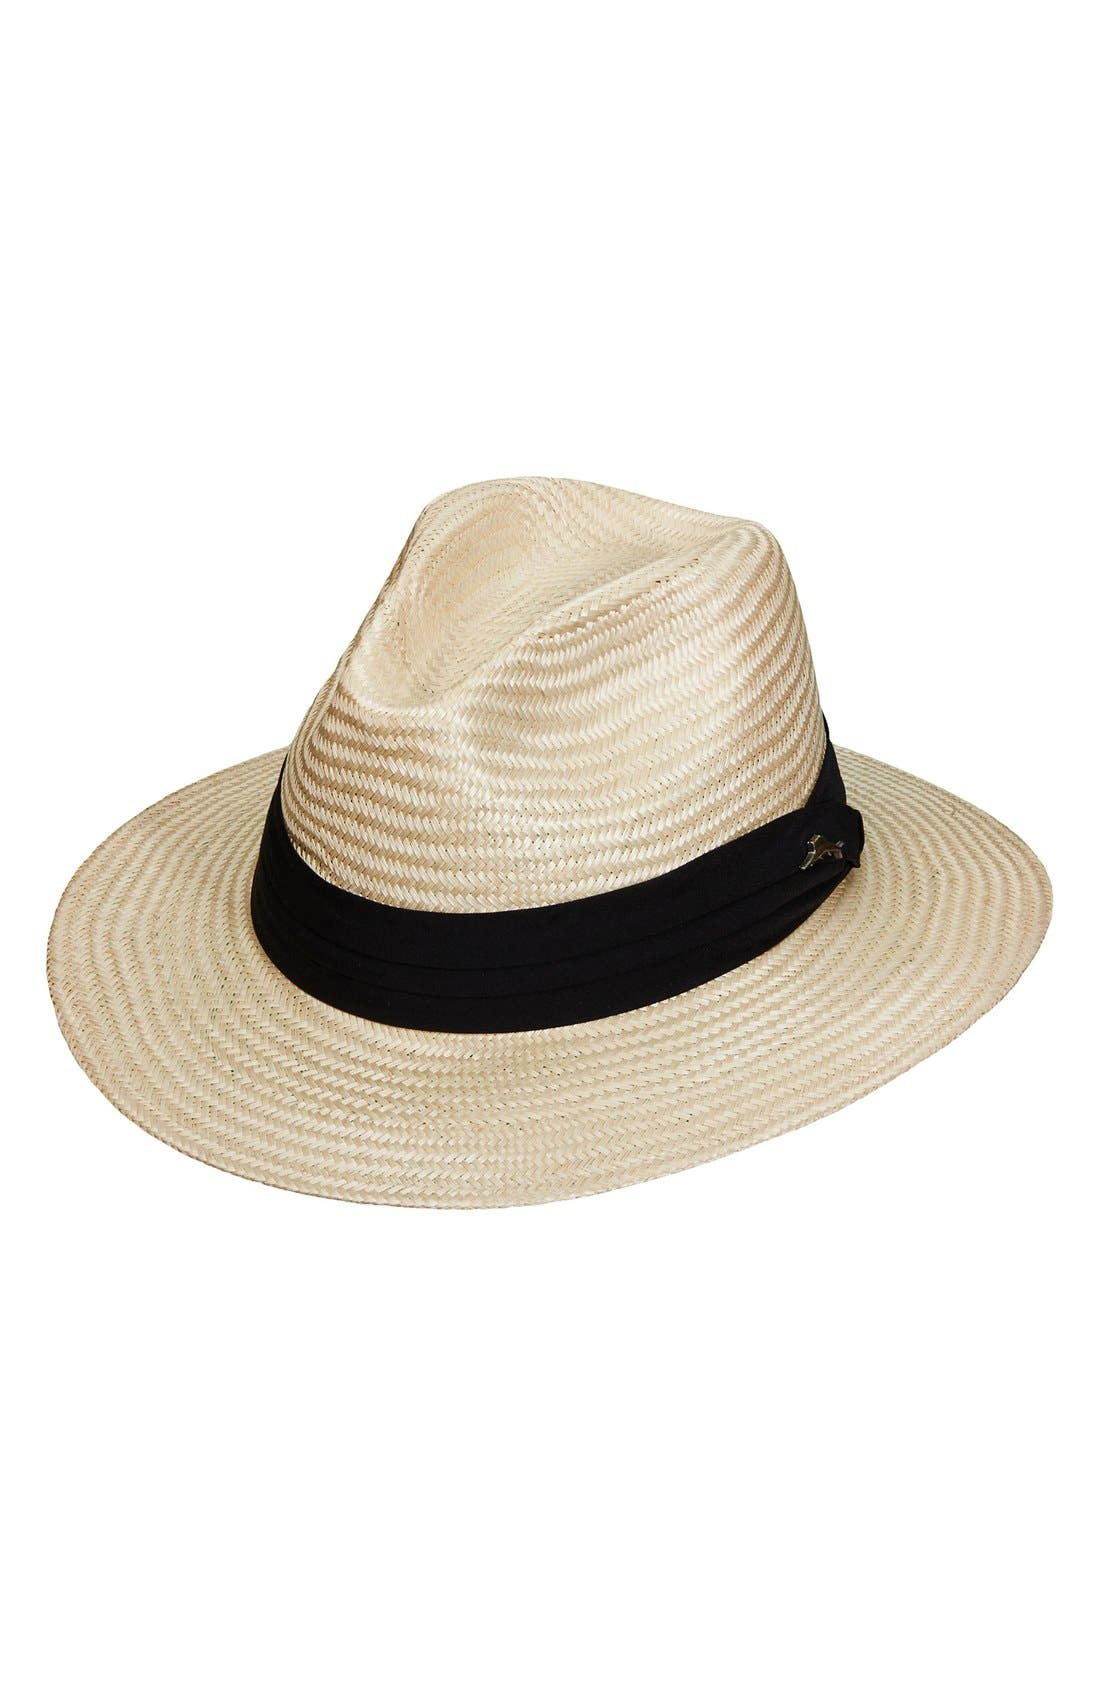 Tommy Bahama Balibuntal Straw Safari Hat